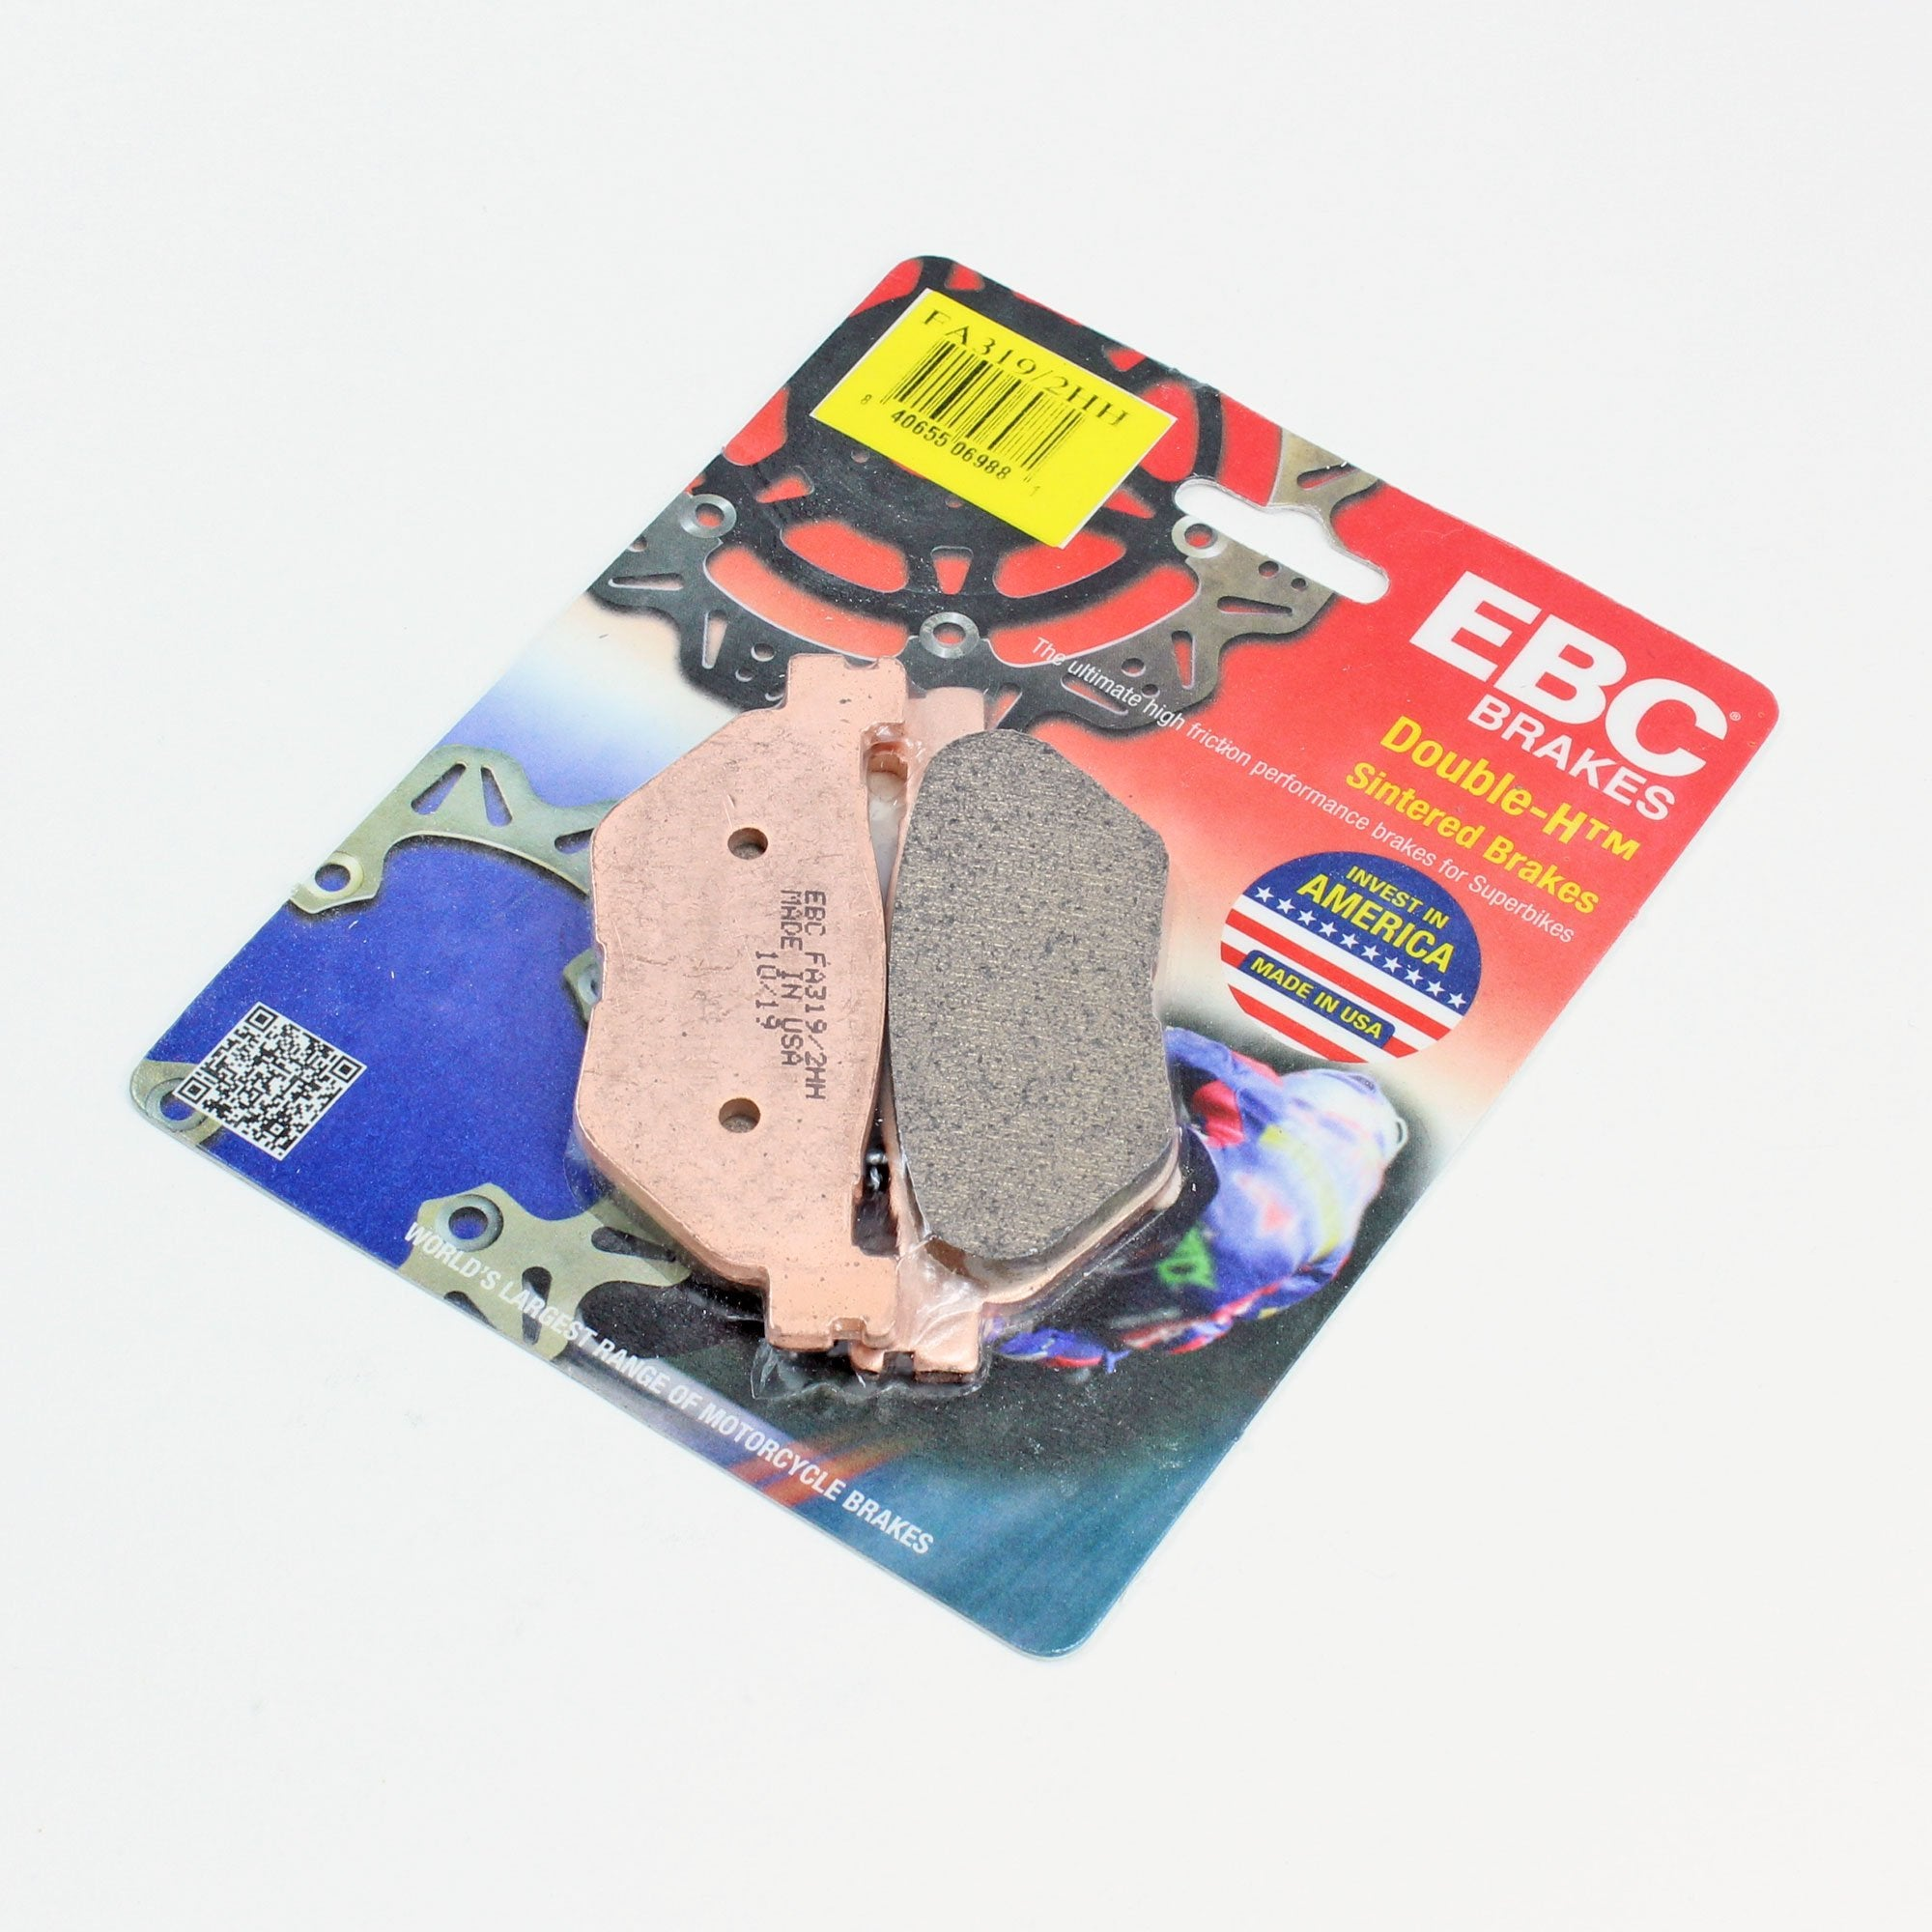 Brakecrafters Brake Pads 2006 - 2014 YAMAHA XV1900 - REAR EBC HH RATED SINTERED BRAKE PADS - 1 PAIR